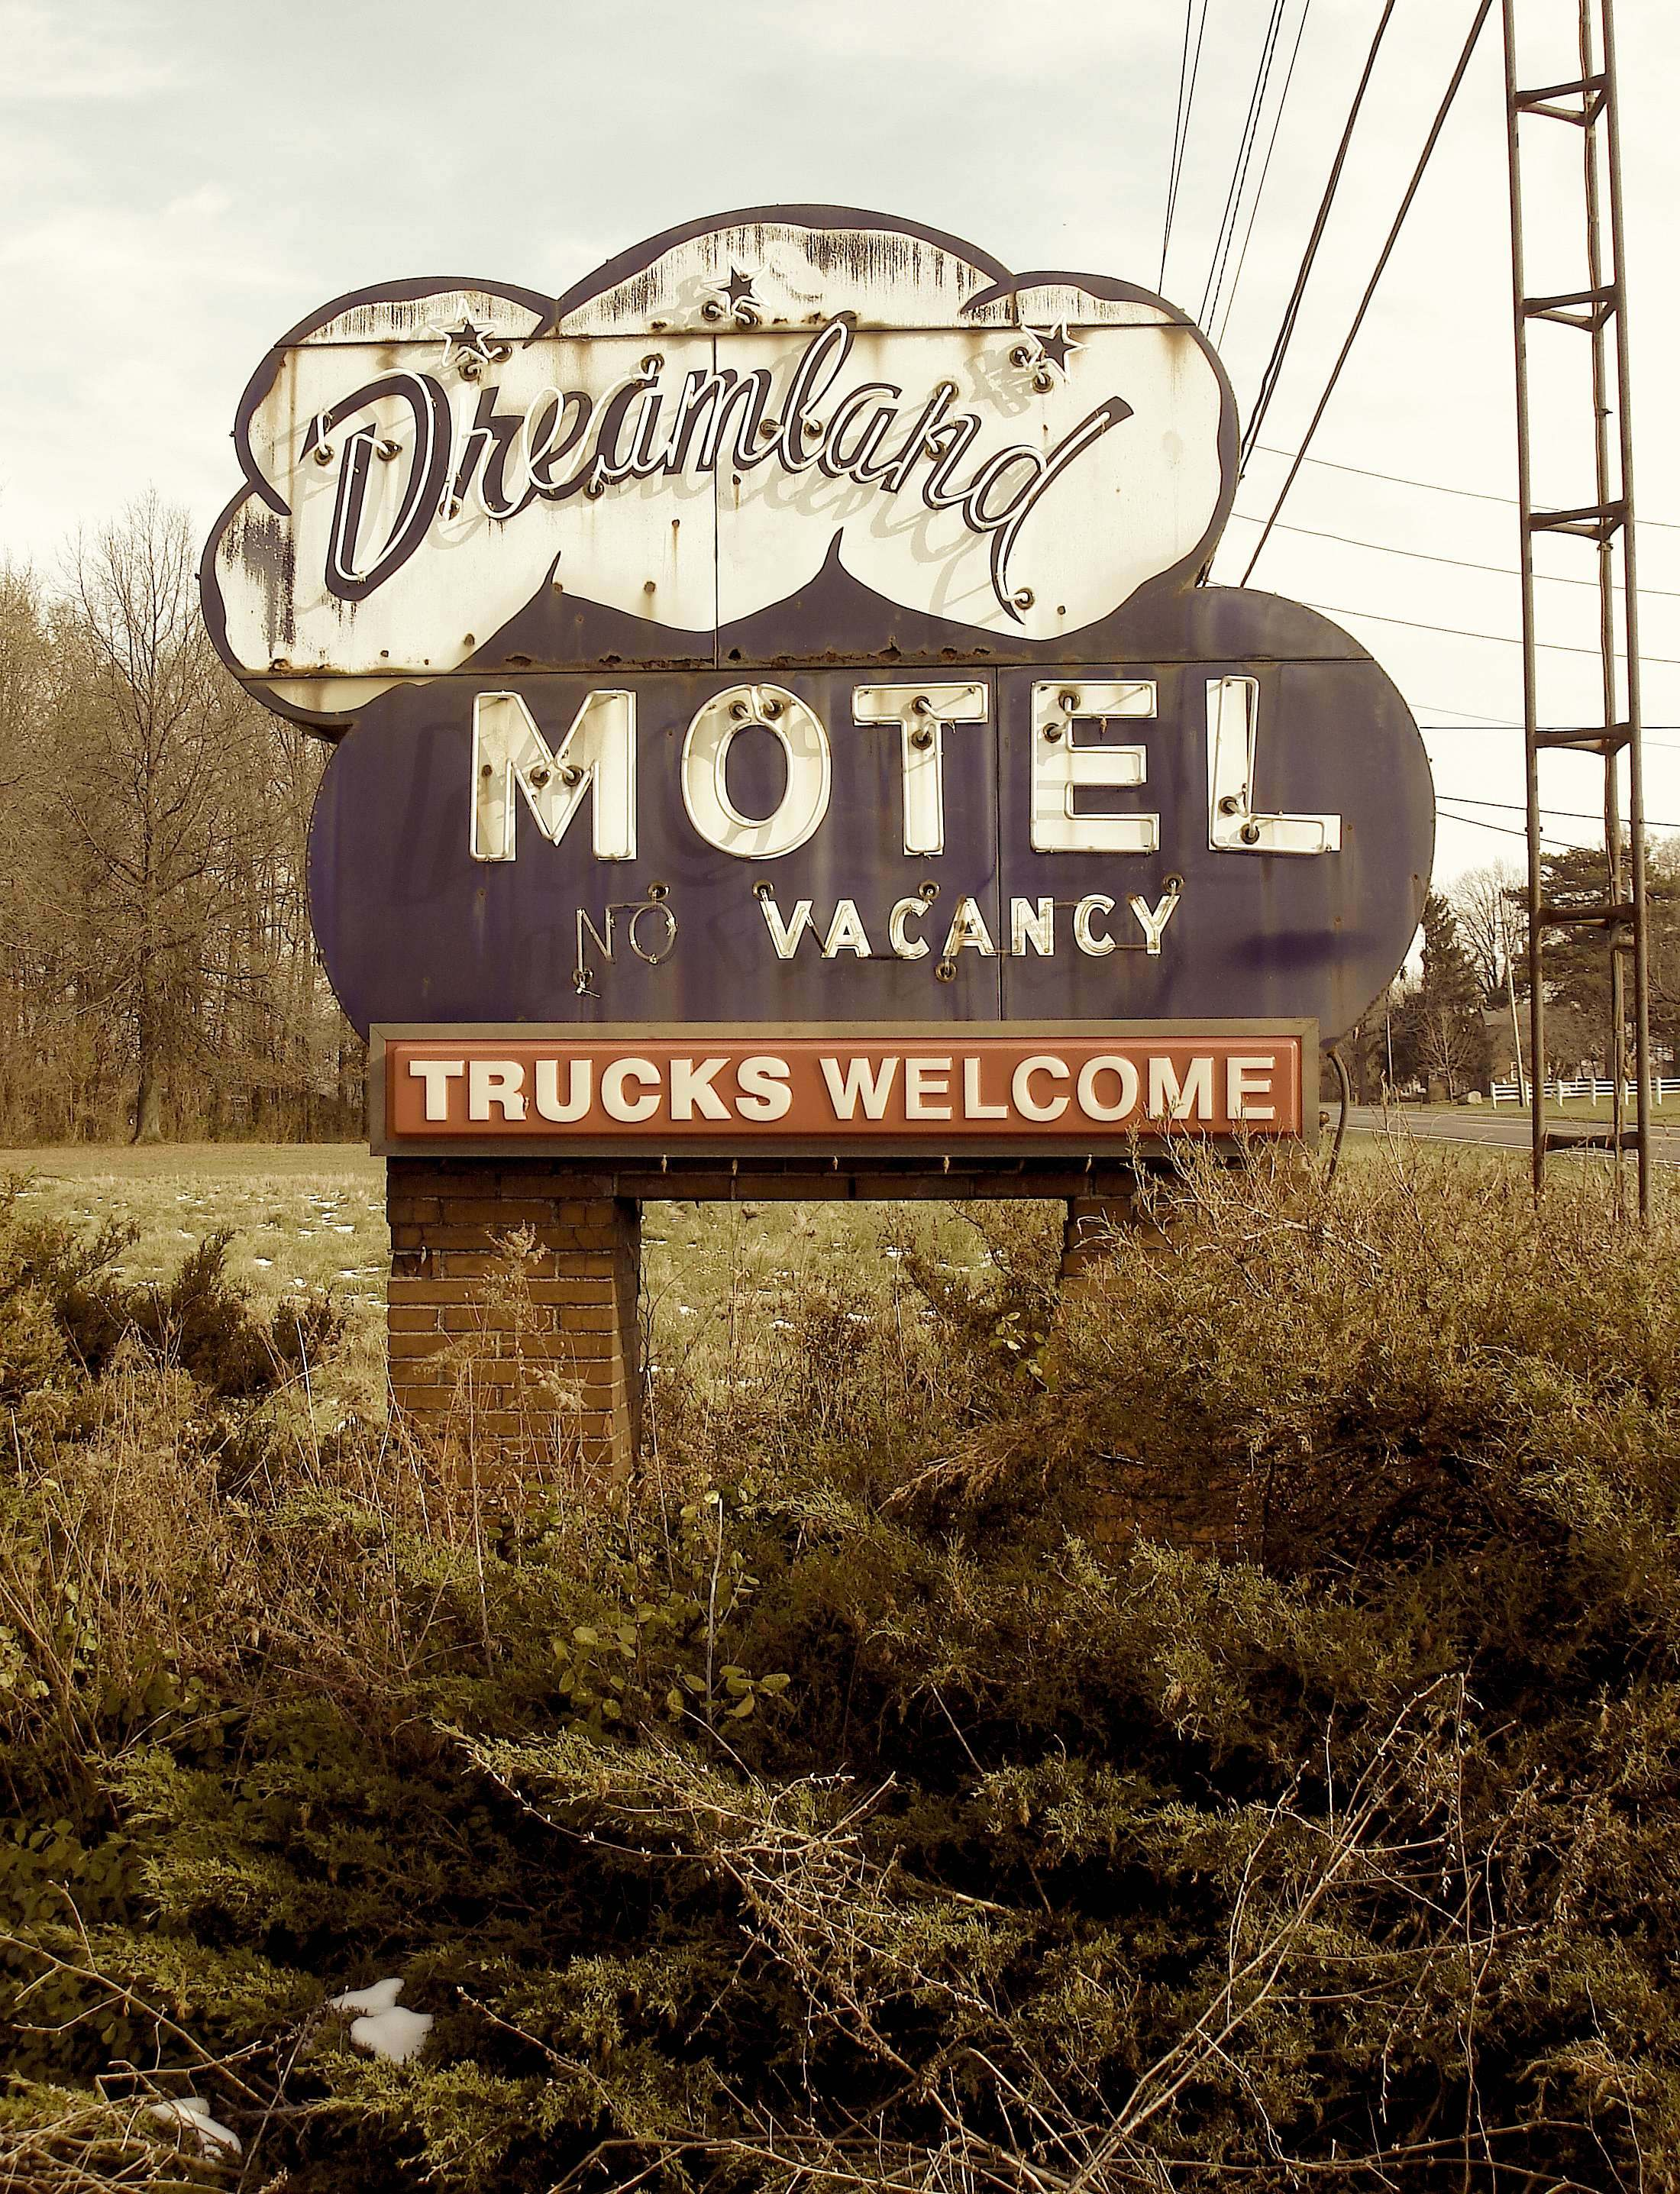 Dreamland Motel - Norwalk, Ohio U.S.A. - November 27, 2008